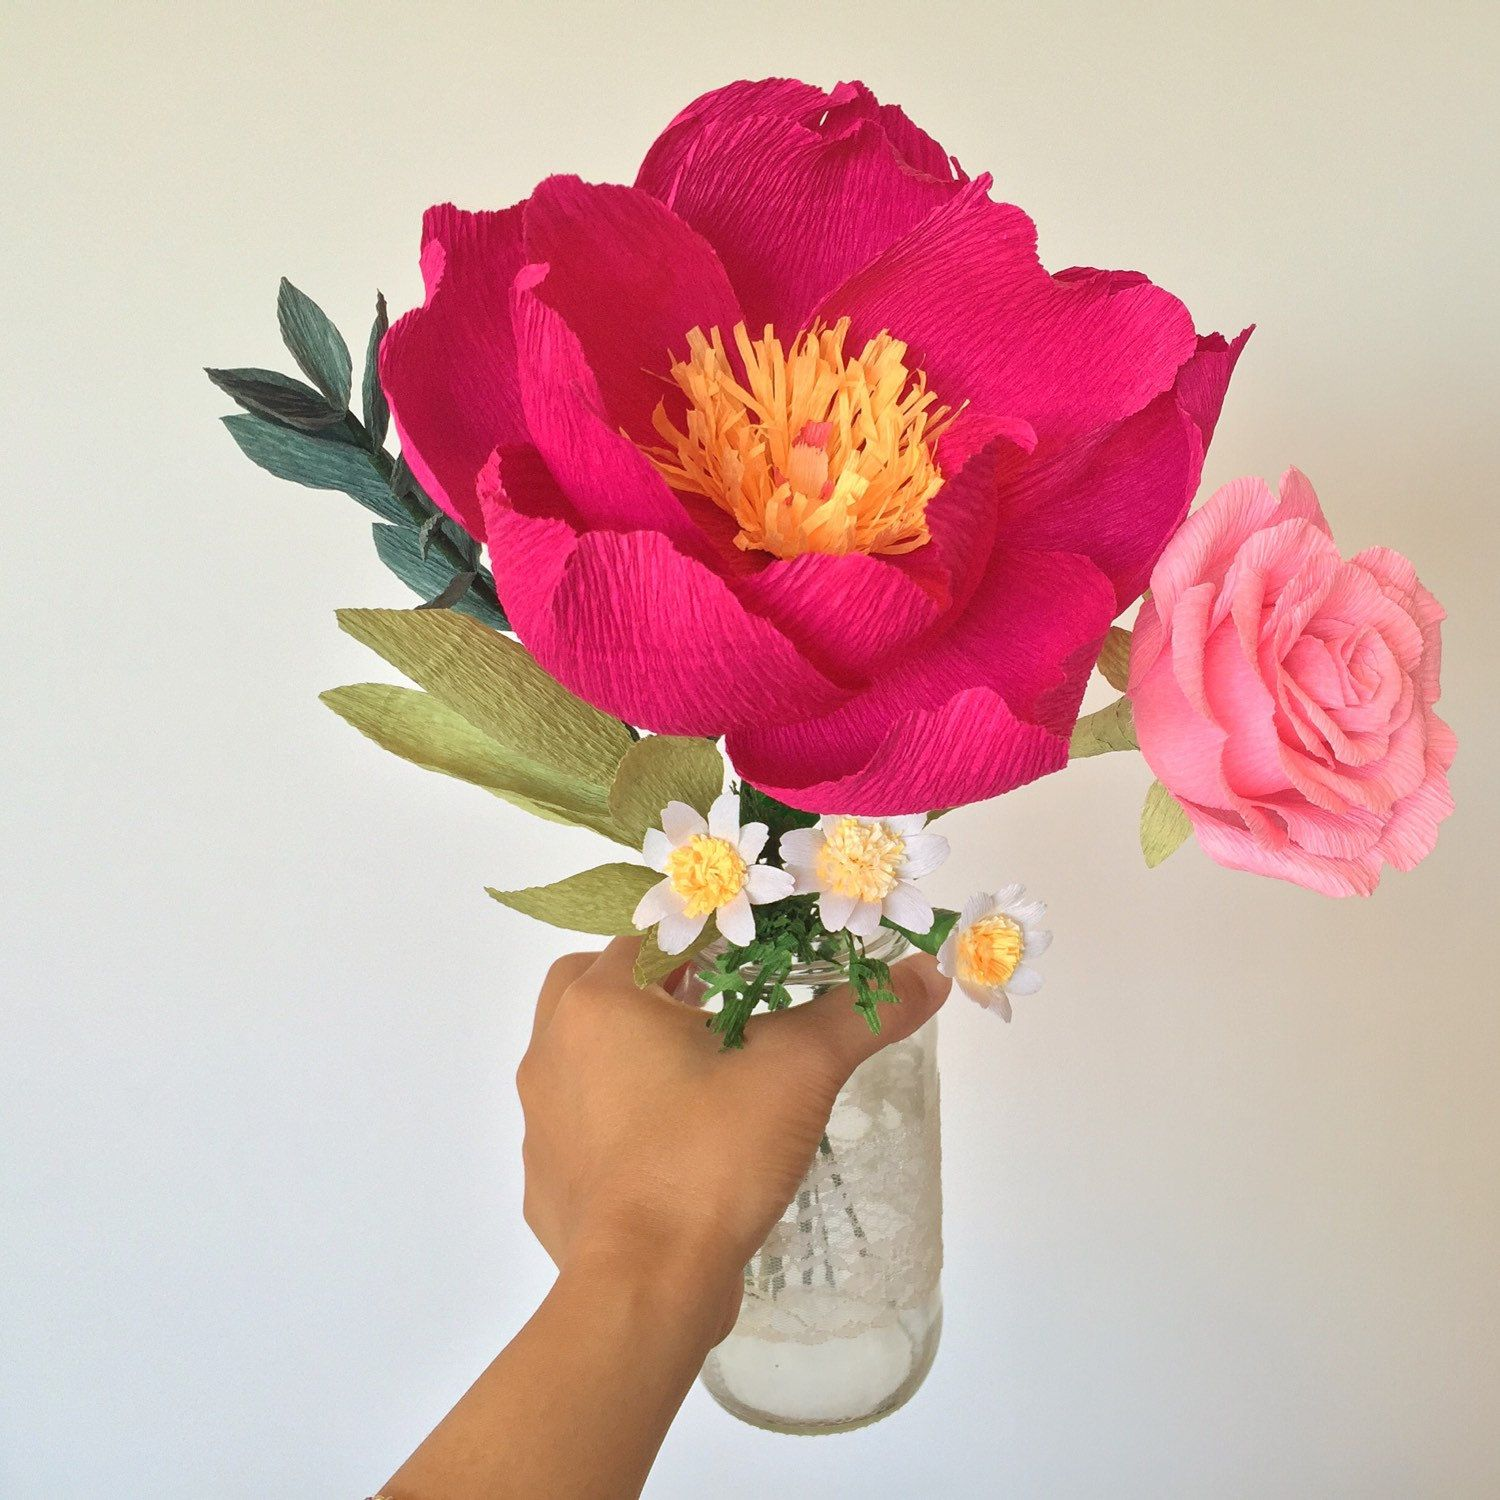 Peony, Rose And Daisies Paper Flower Bouquet Looking Lovely In